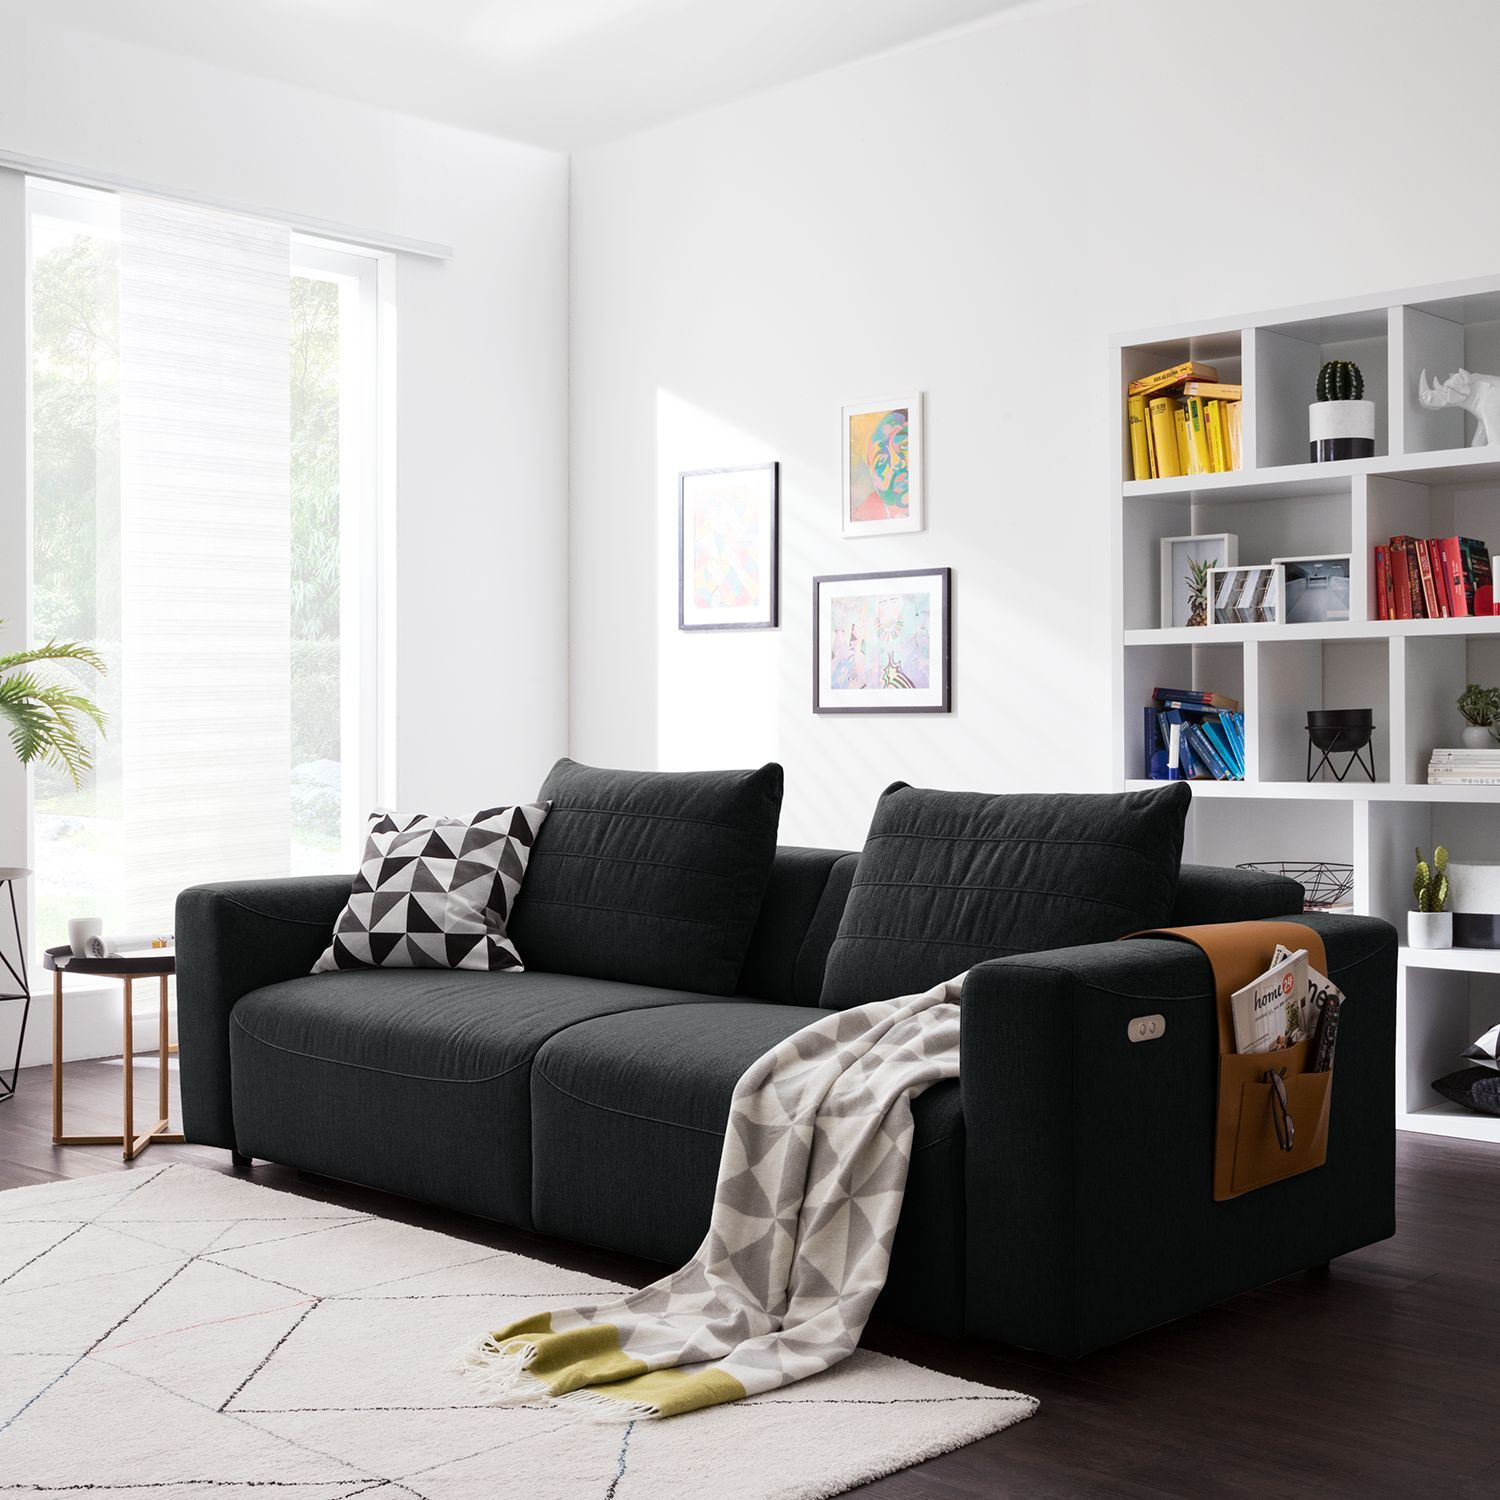 Sofa Finny 3 Sitzer In 2020 Sofa Design Sofas Sofa Mit Relaxfunktion